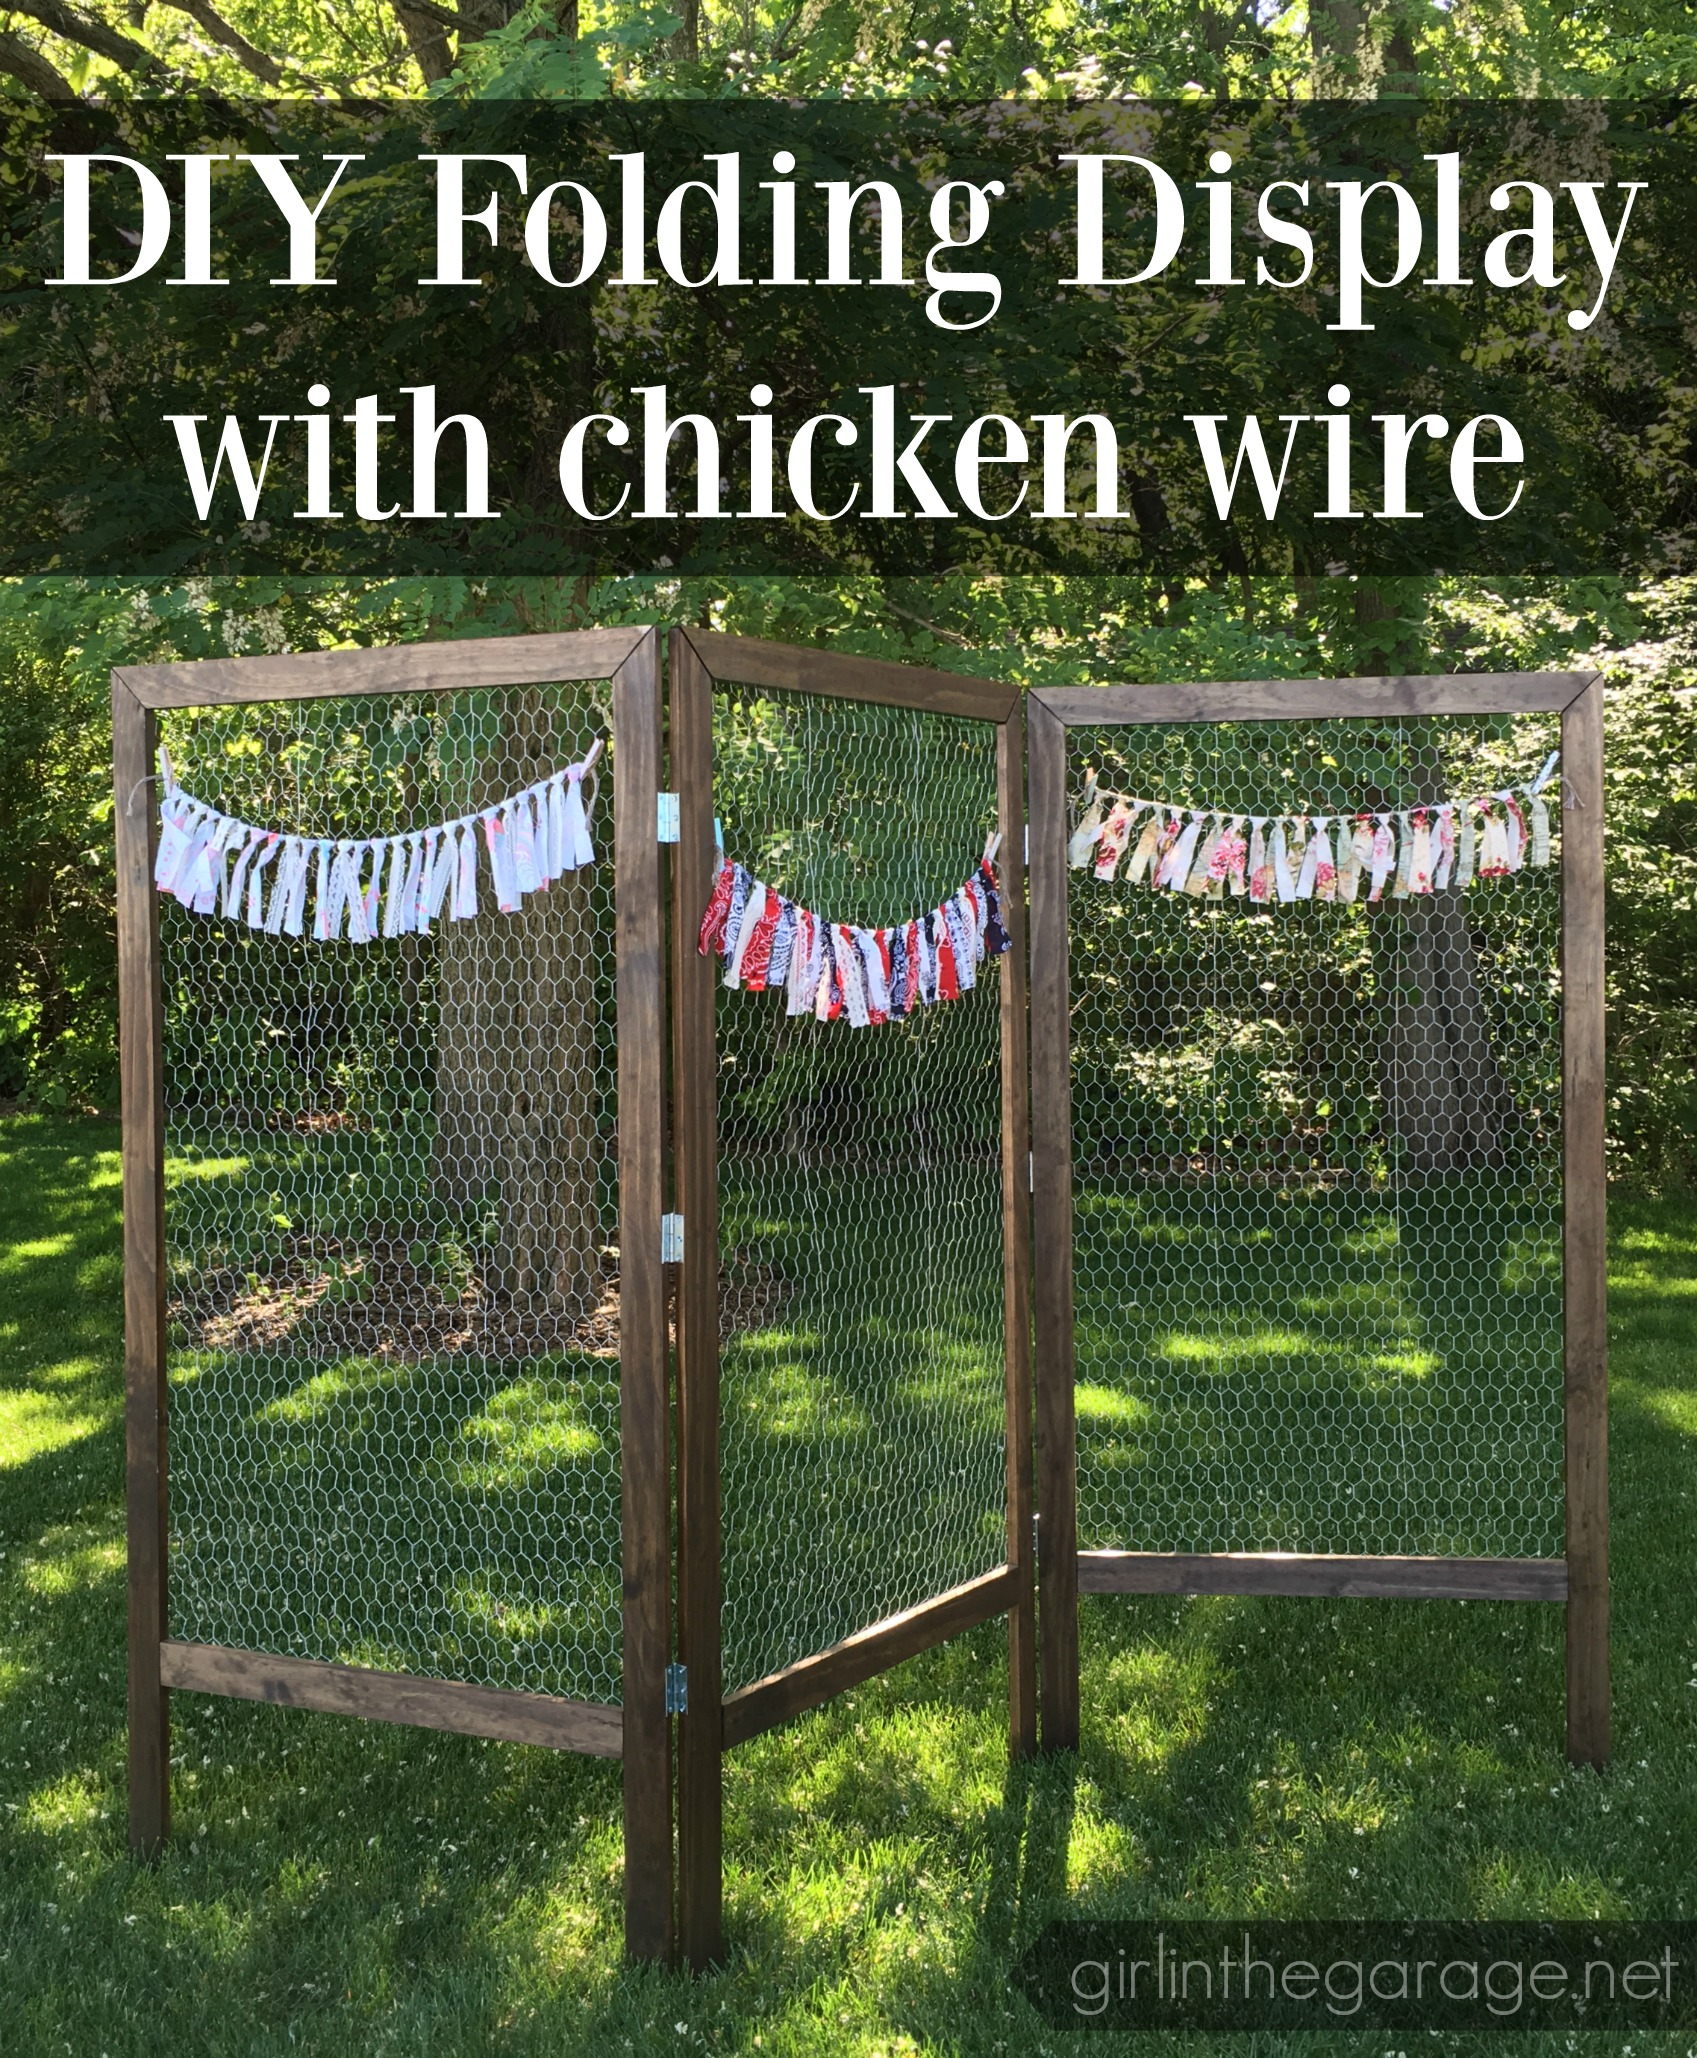 DIY Folding Display with Chicken Wire - Vintage Market - Craft Fair - Girl in the Garage